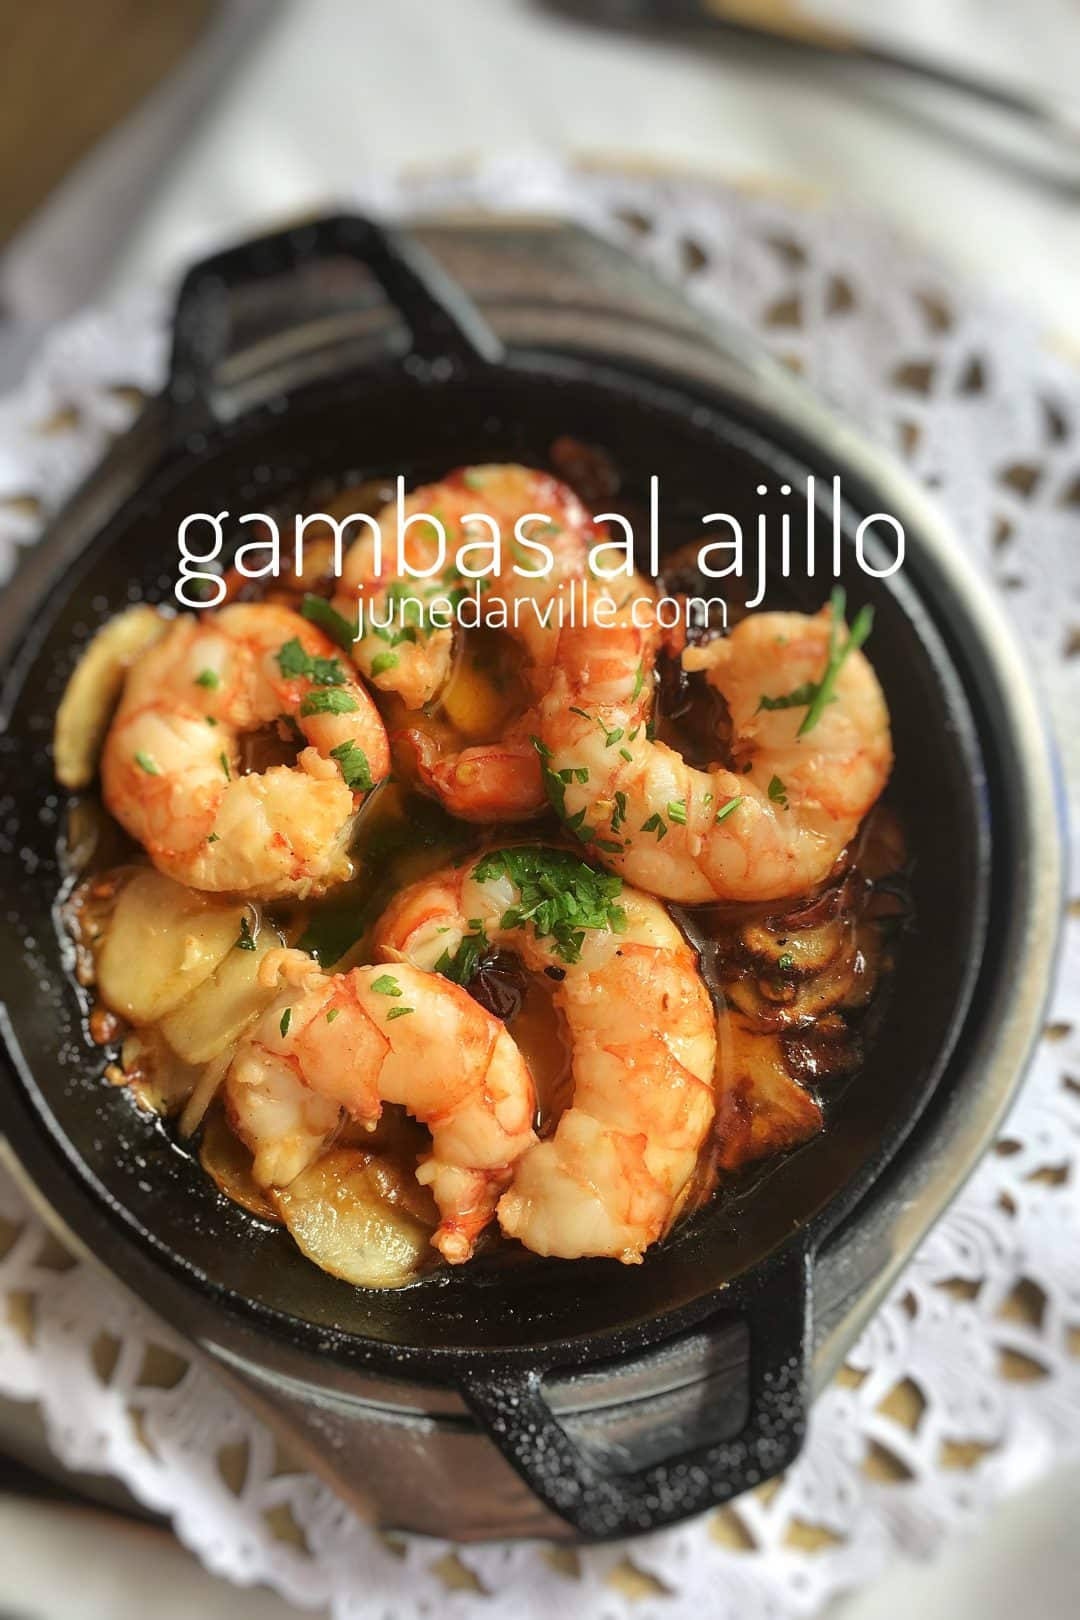 Learn how to make delicious gambas al ajillo, a classic Spanish garlic prawns recipe with olive oil, garlic and fresh parsley!